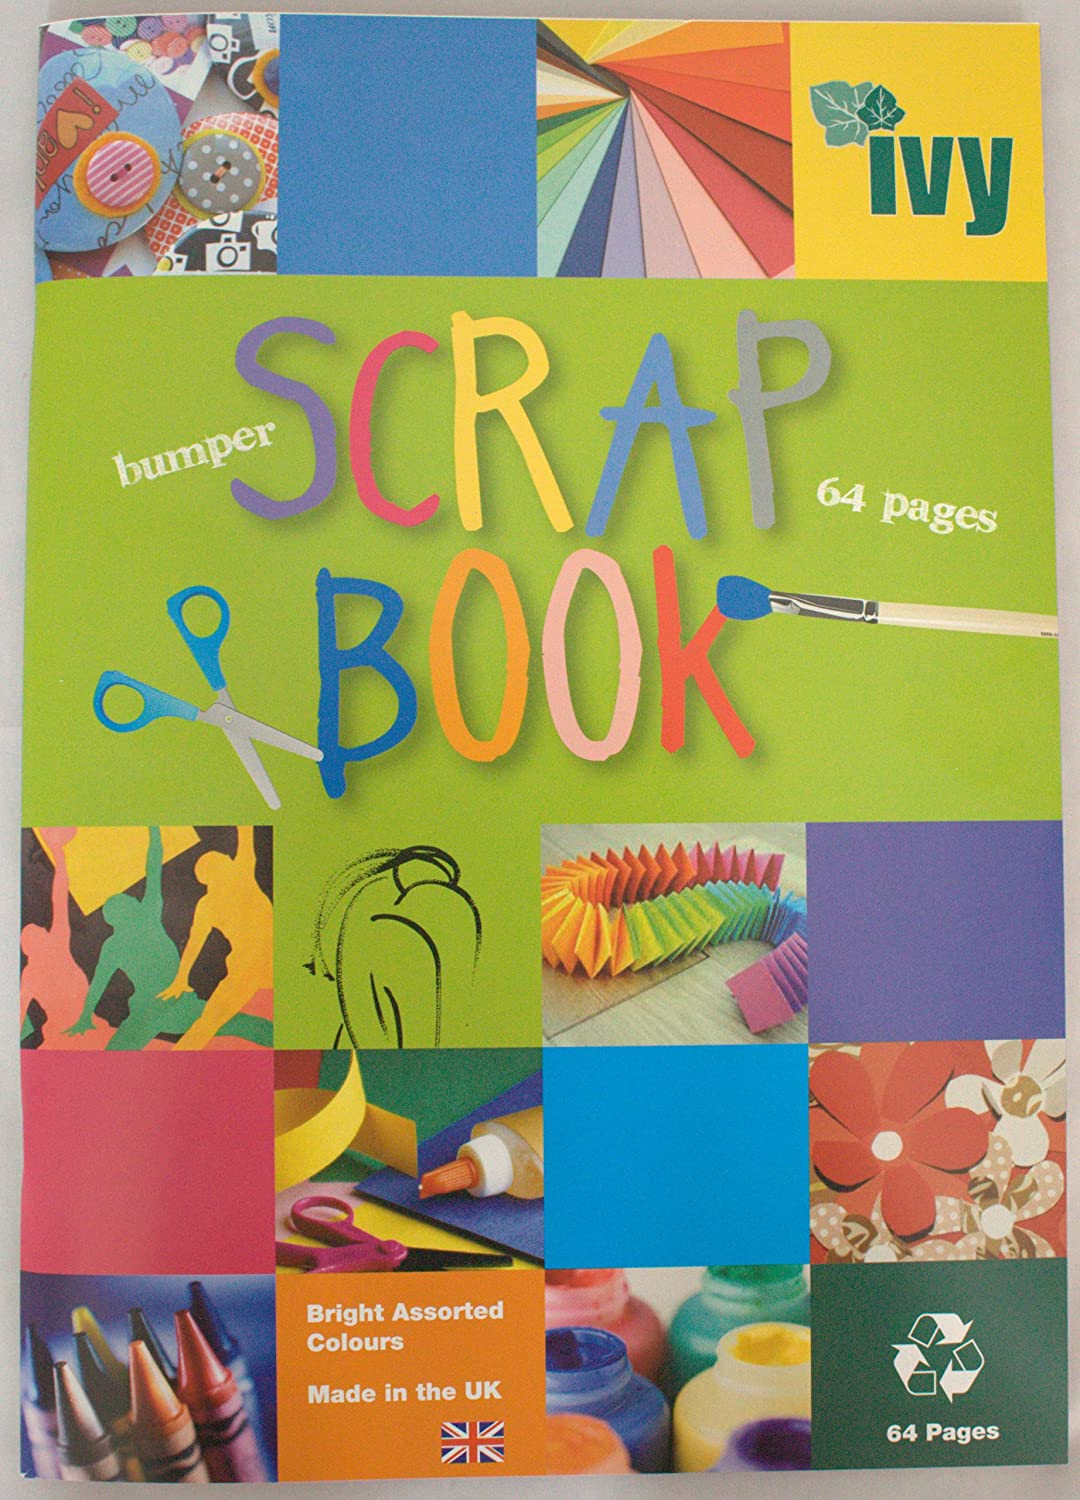 6 x SCRAPBOOKS EXTRA LARGE JUMBO 64 COLOURED PAGES 370mm x 240mm ...